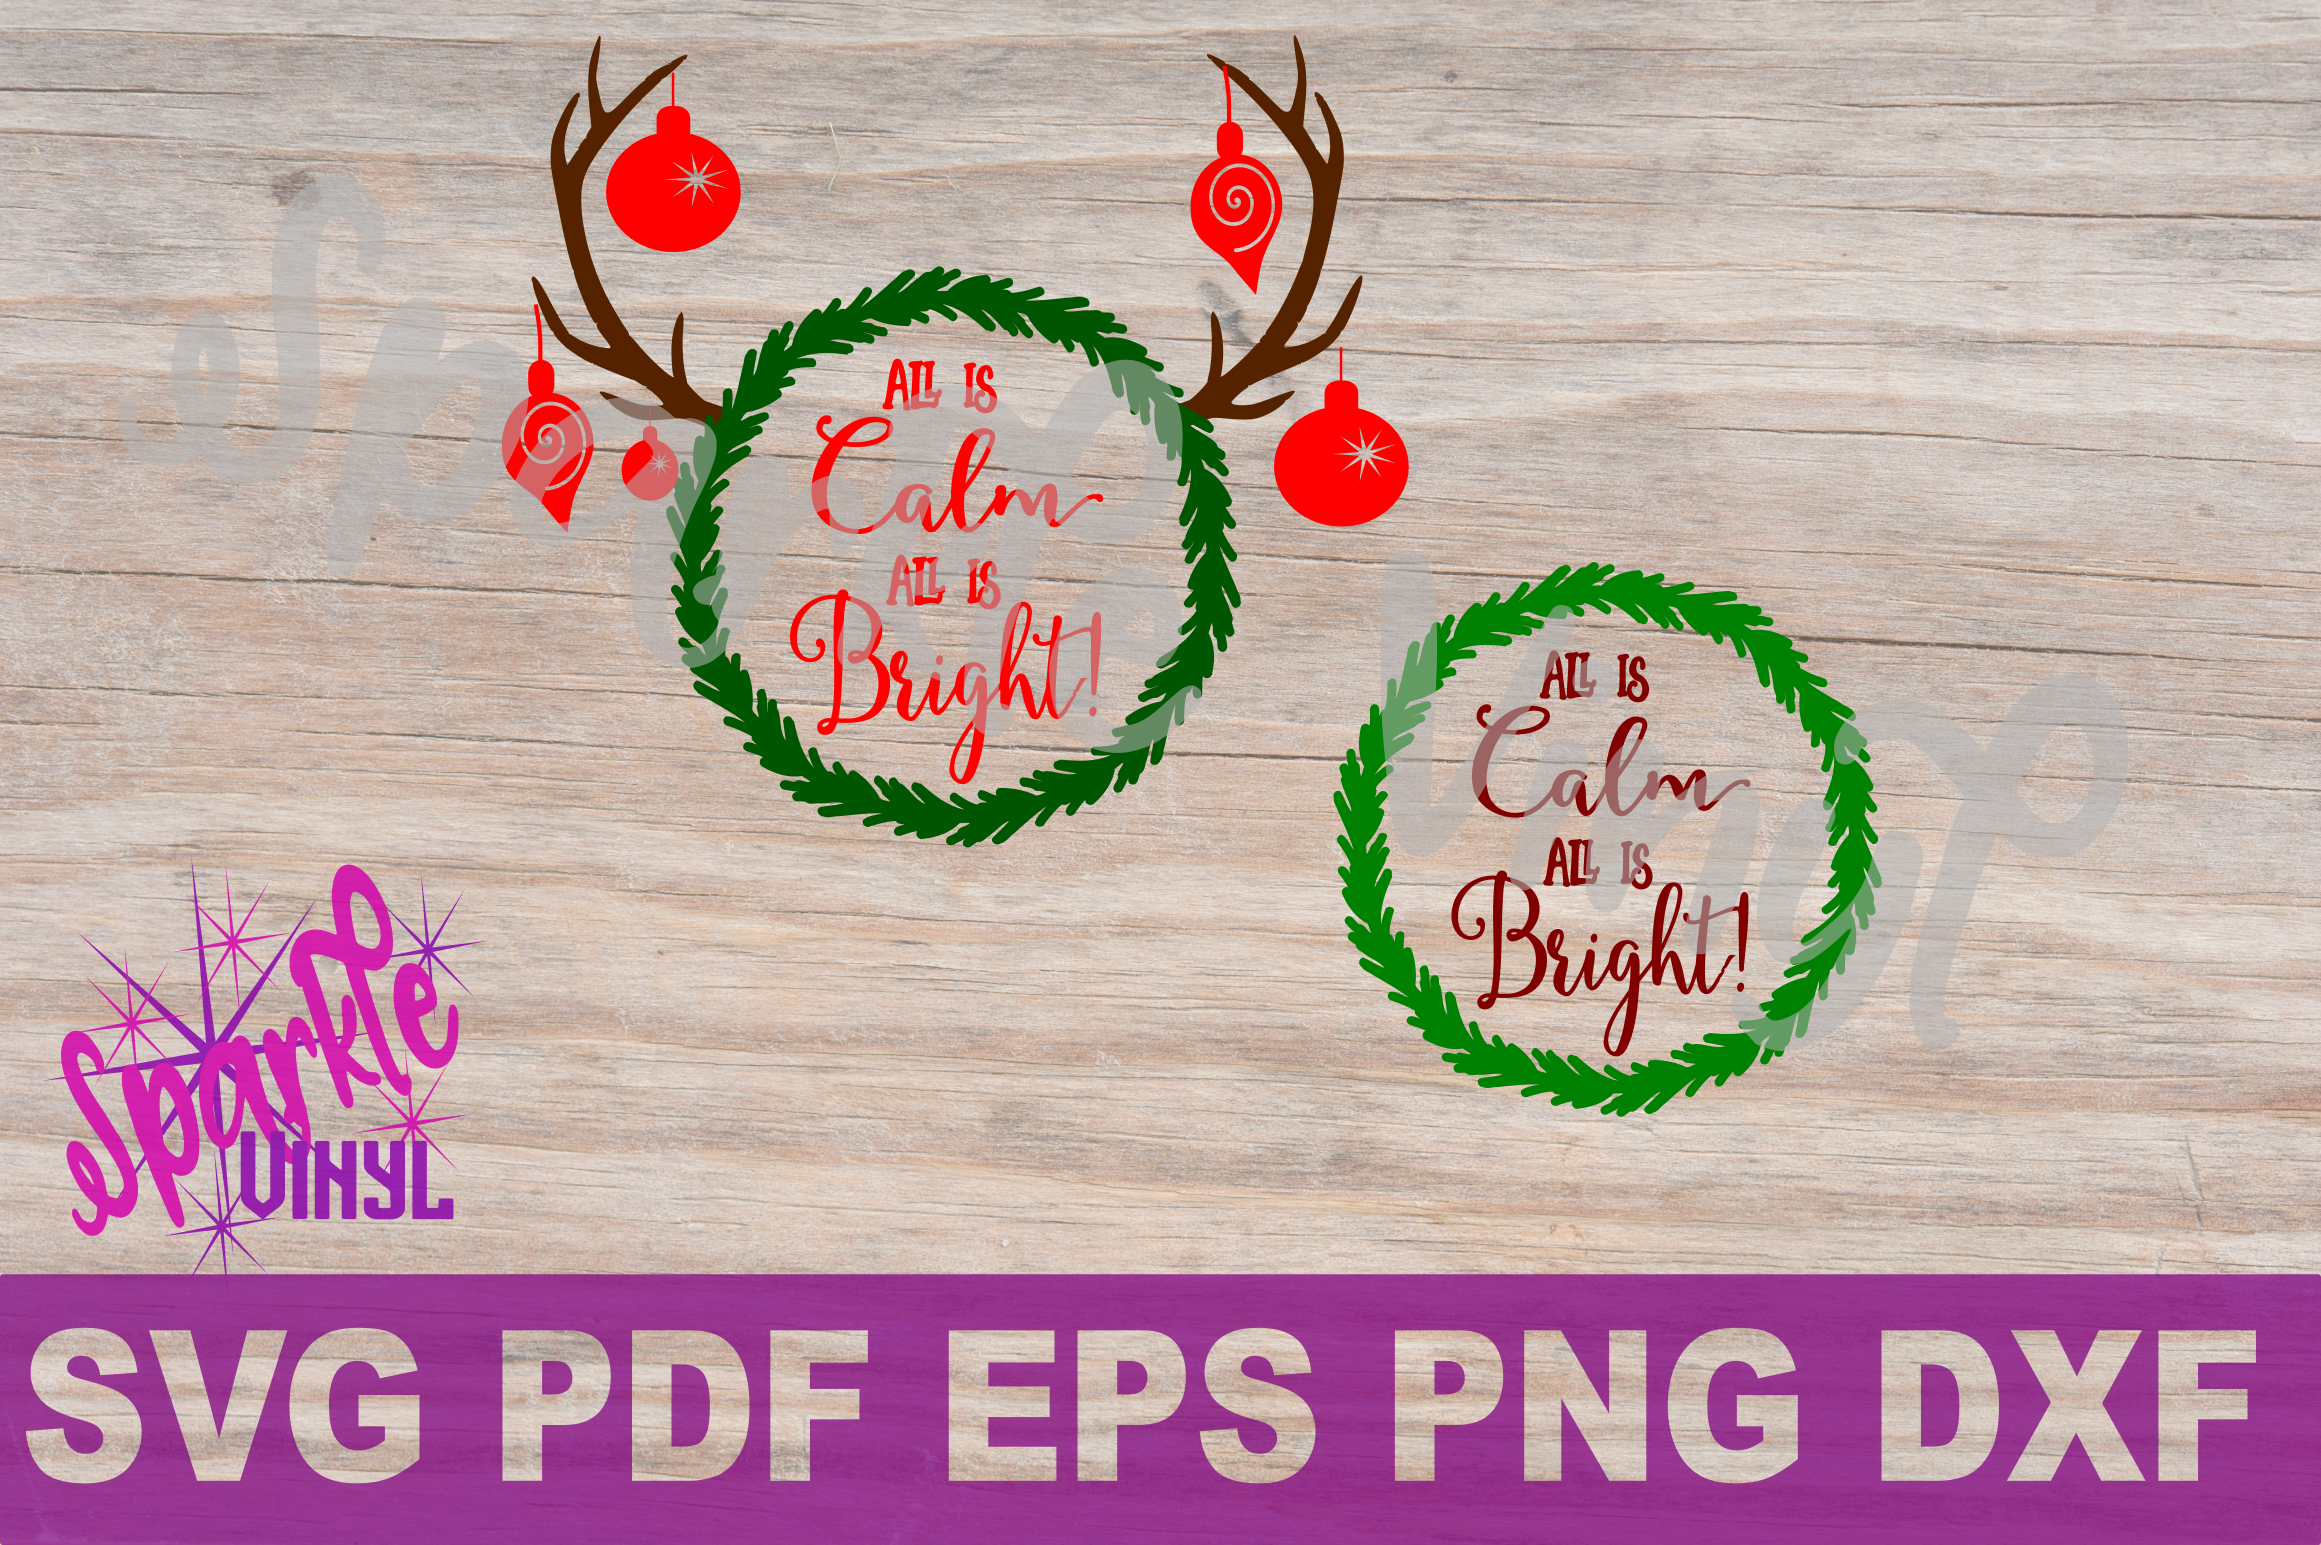 Svg Christmas Sign Stencil Bundle printable svg dxf png pdf esp files for cricut or silhouette Merry Christmas Trees Sold here Mistletoe svg example image 10